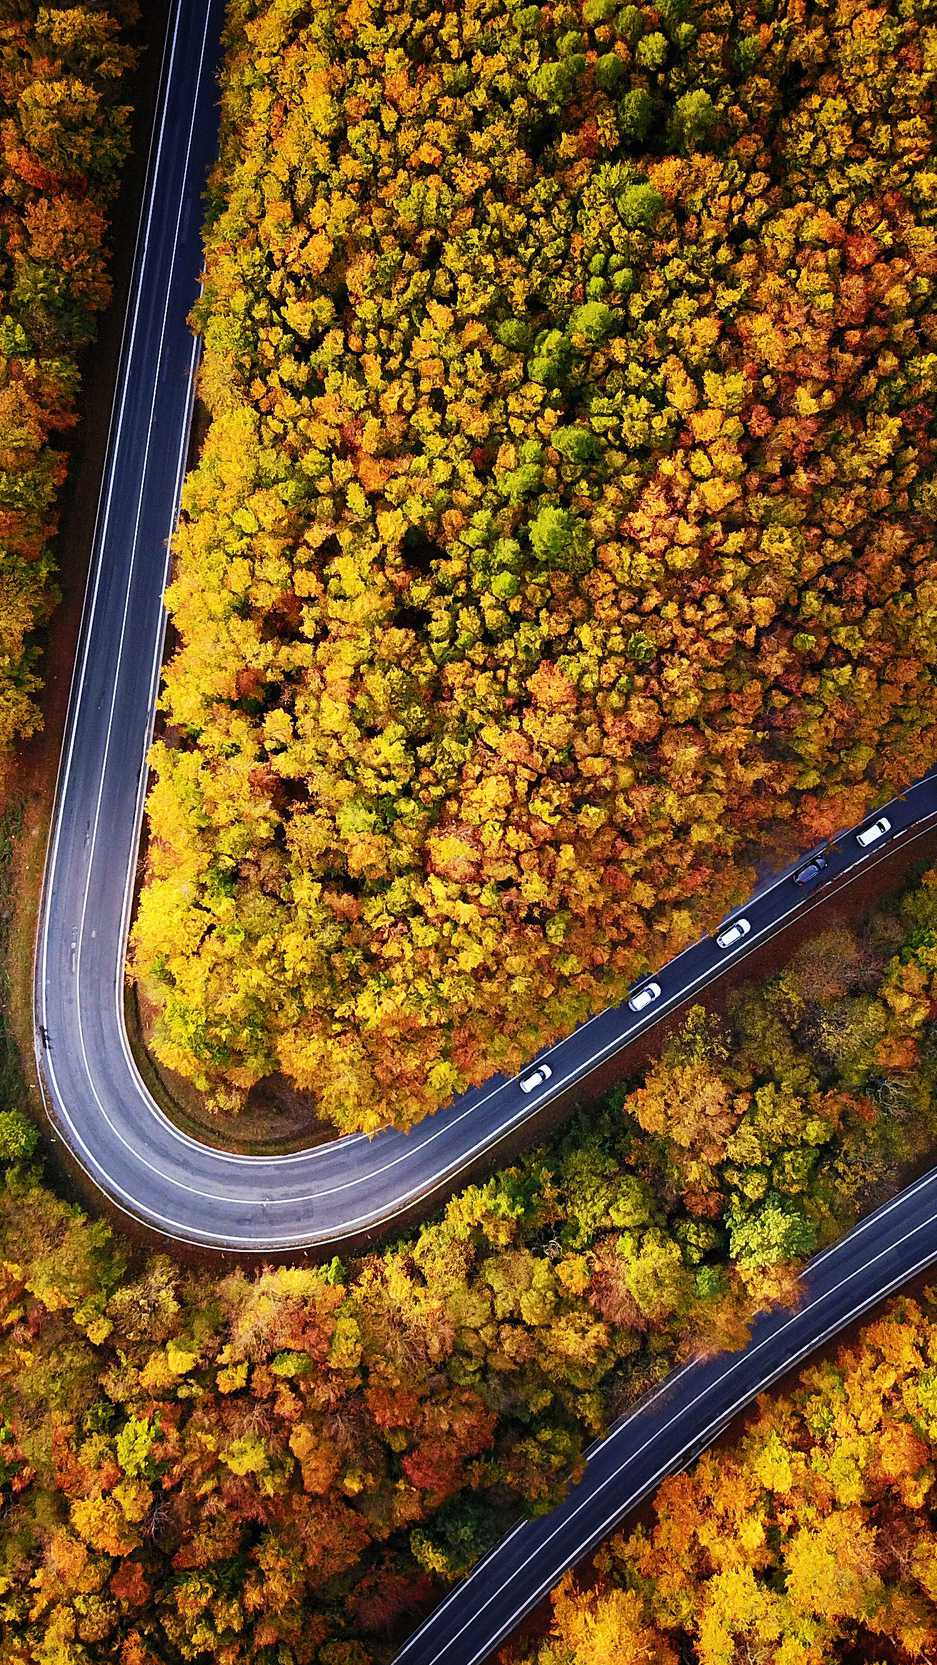 Cute Halloween Wallpaper Phone Twisted Road Autumn Sky View Iphone Wallpaper Iphone